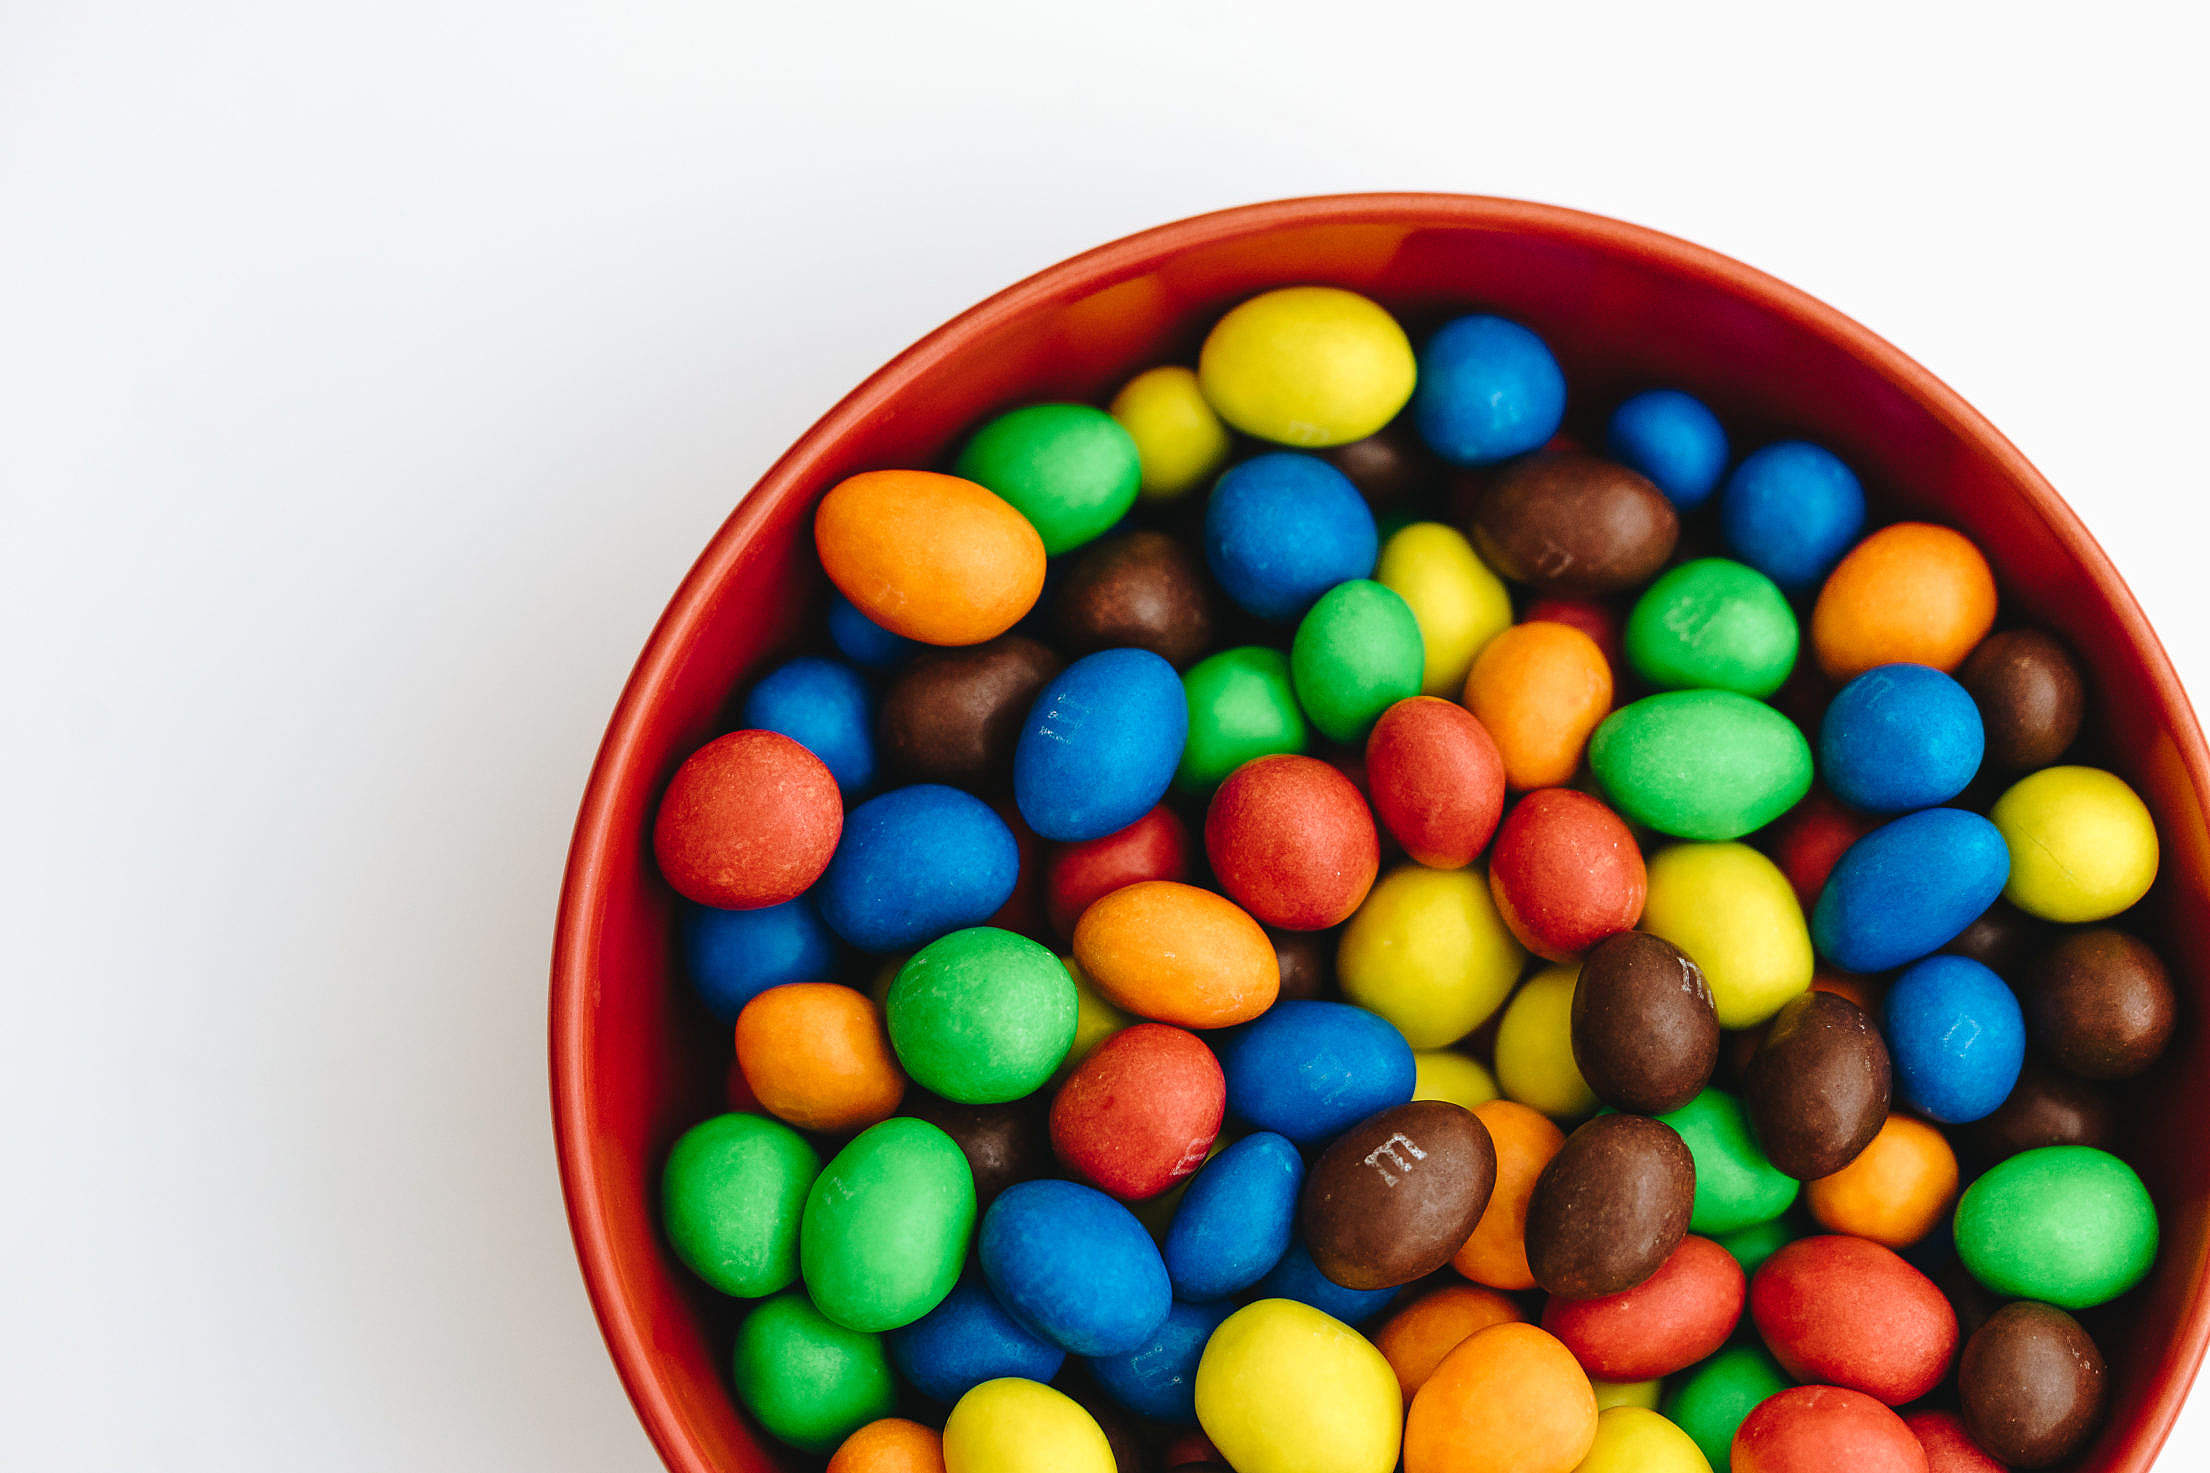 Bowl Full of Colorful Peanut Chocolates Free Stock Photo